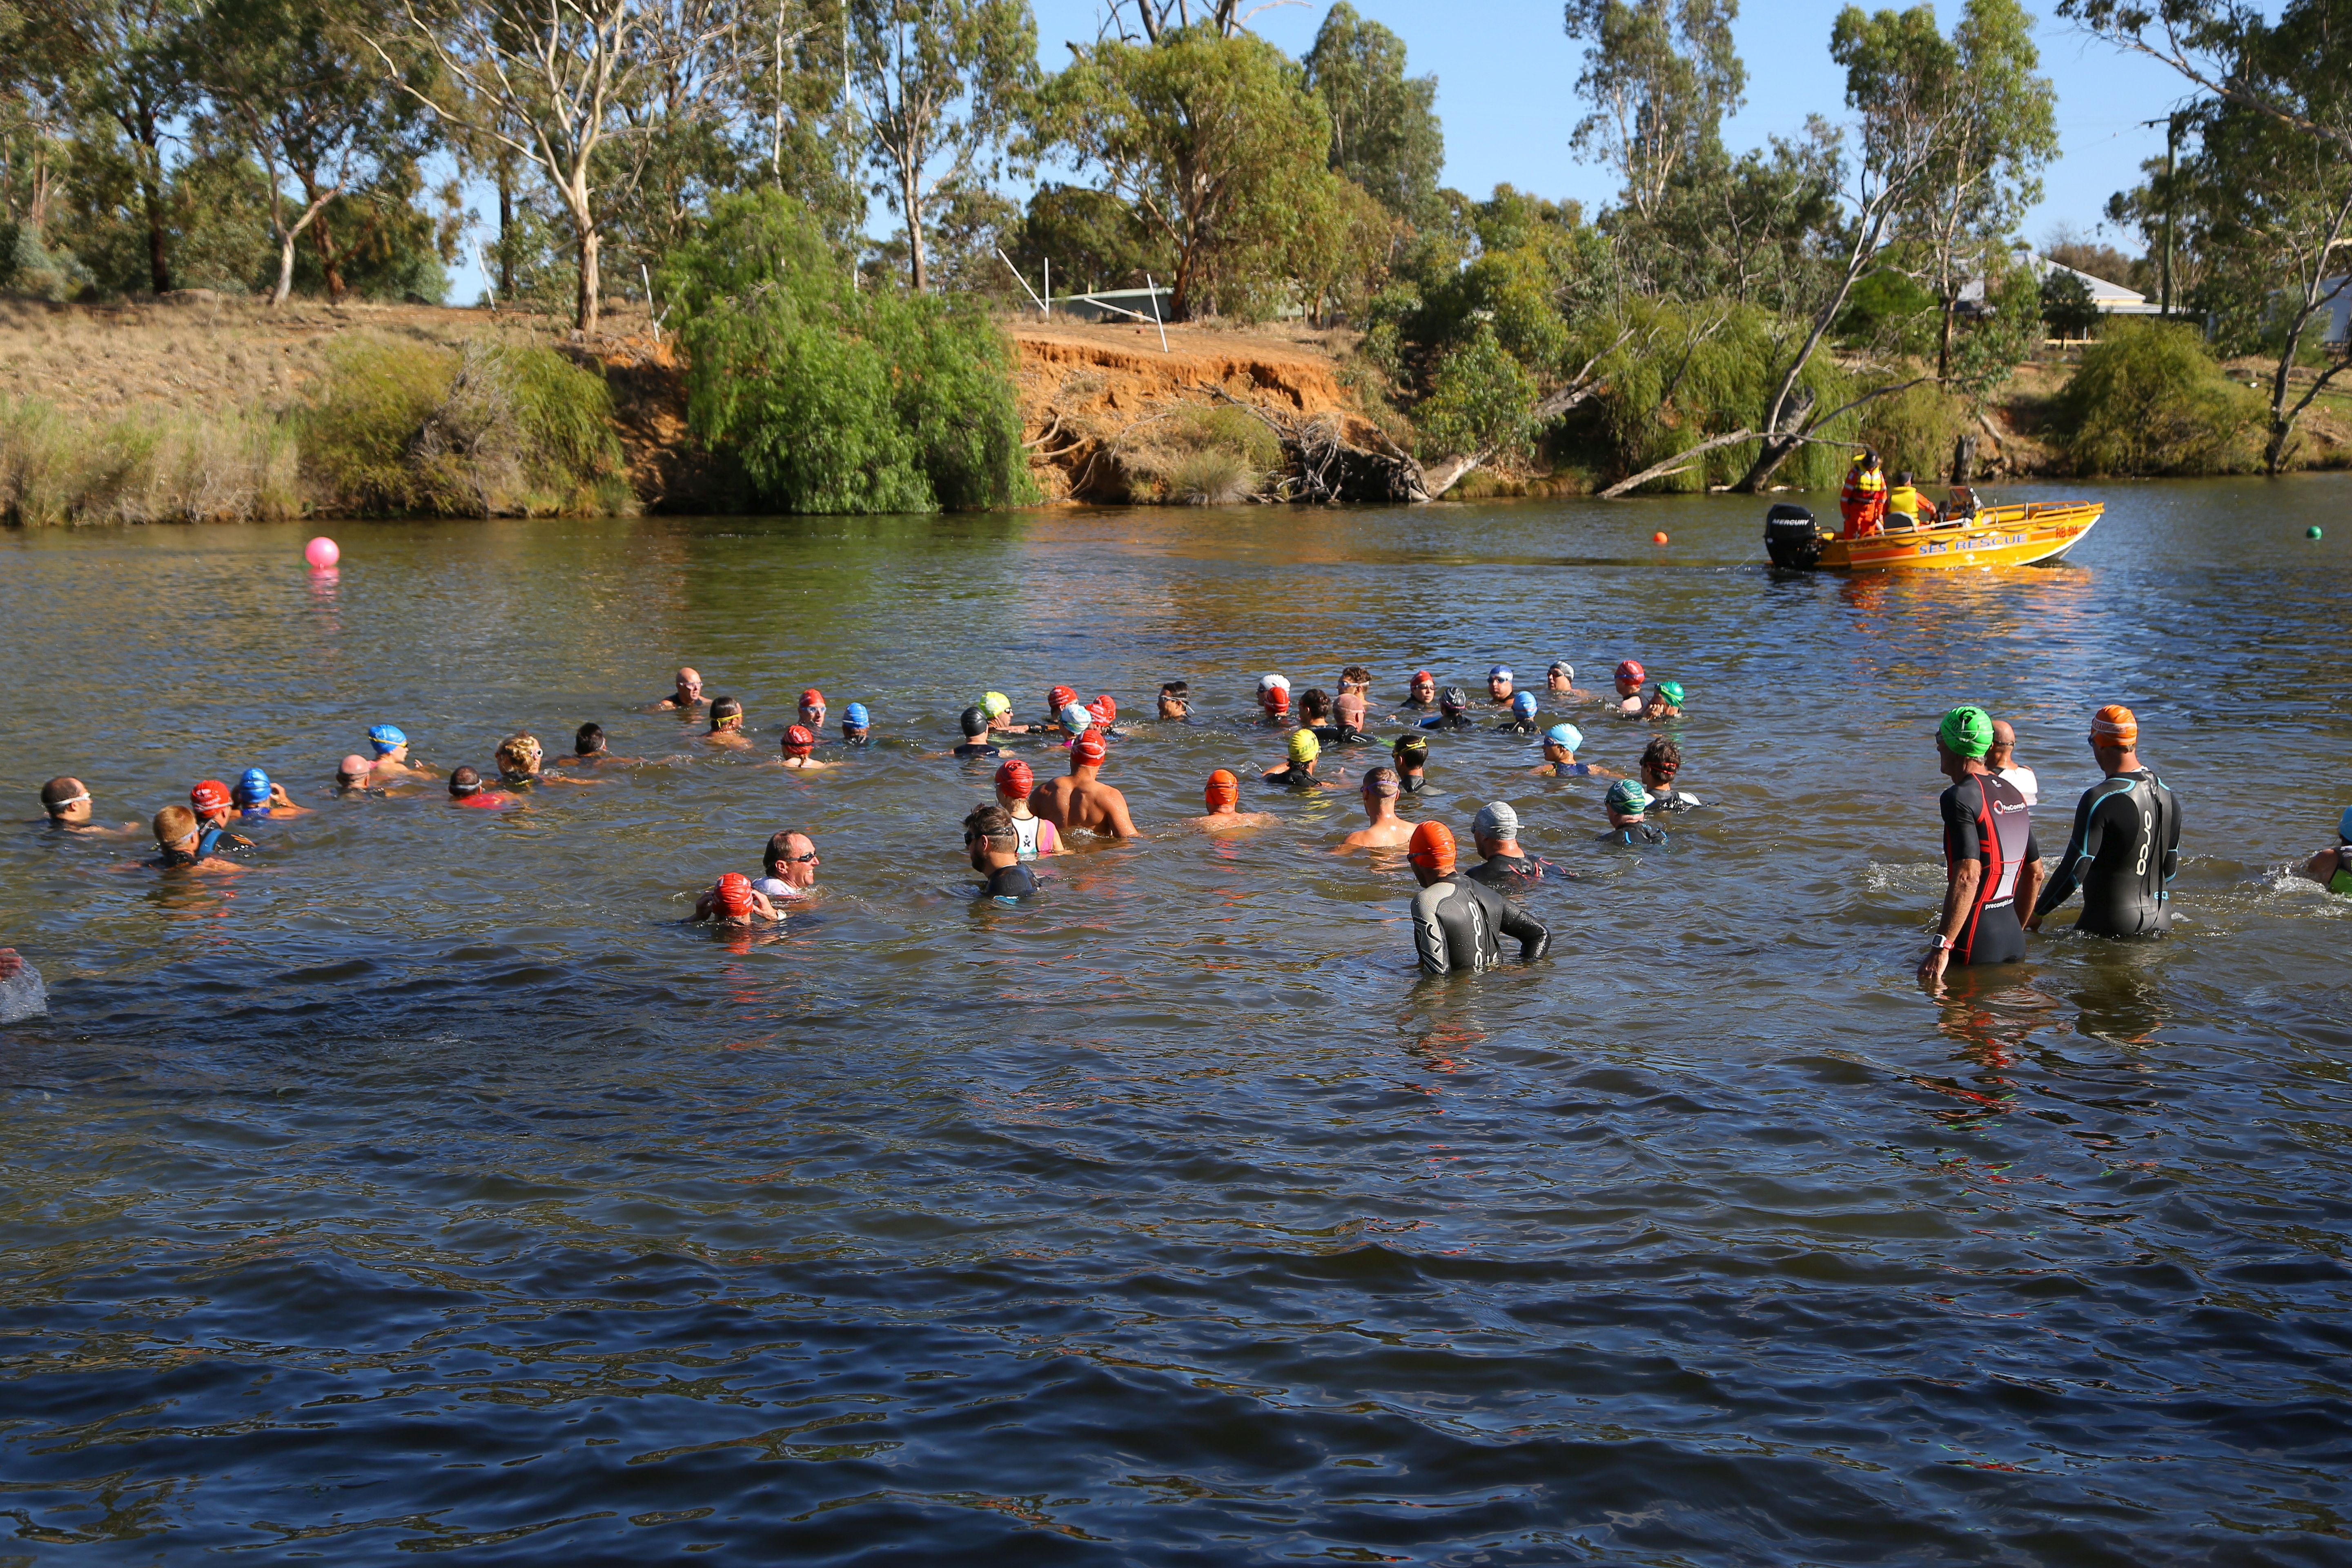 Loddon River - Swimmers listen carefully to instructions from the coach; this will help their performance in the race.